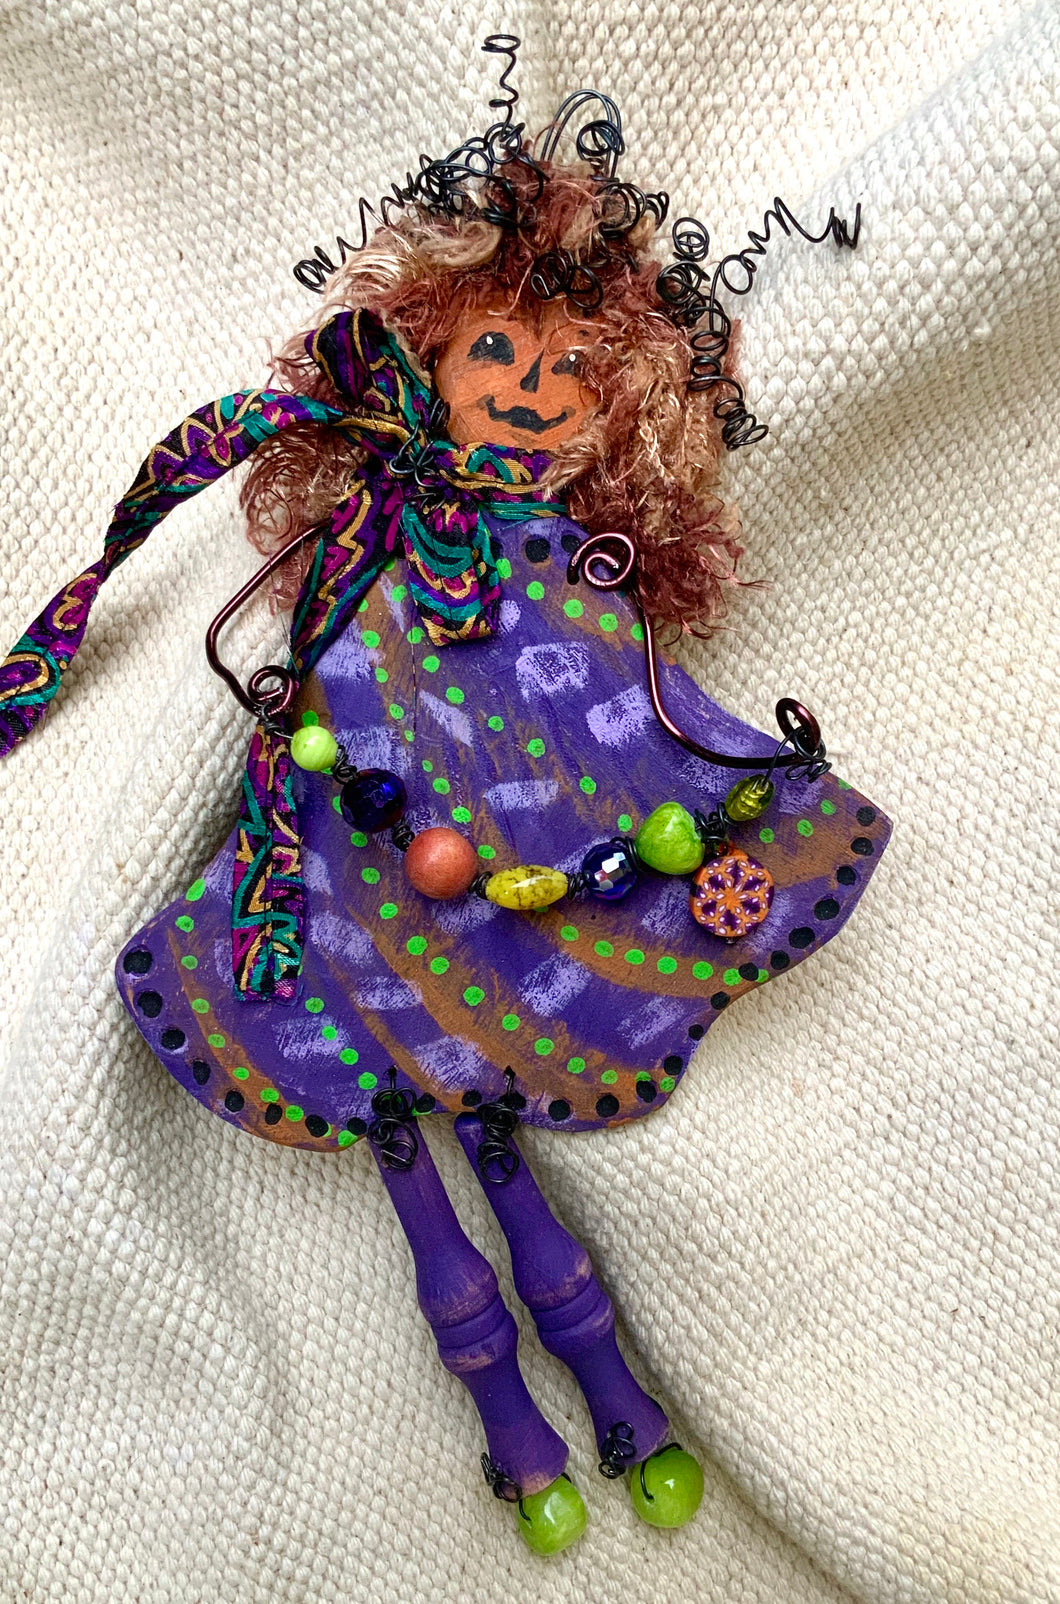 Pumpkin-head doll, Miss Twirlie